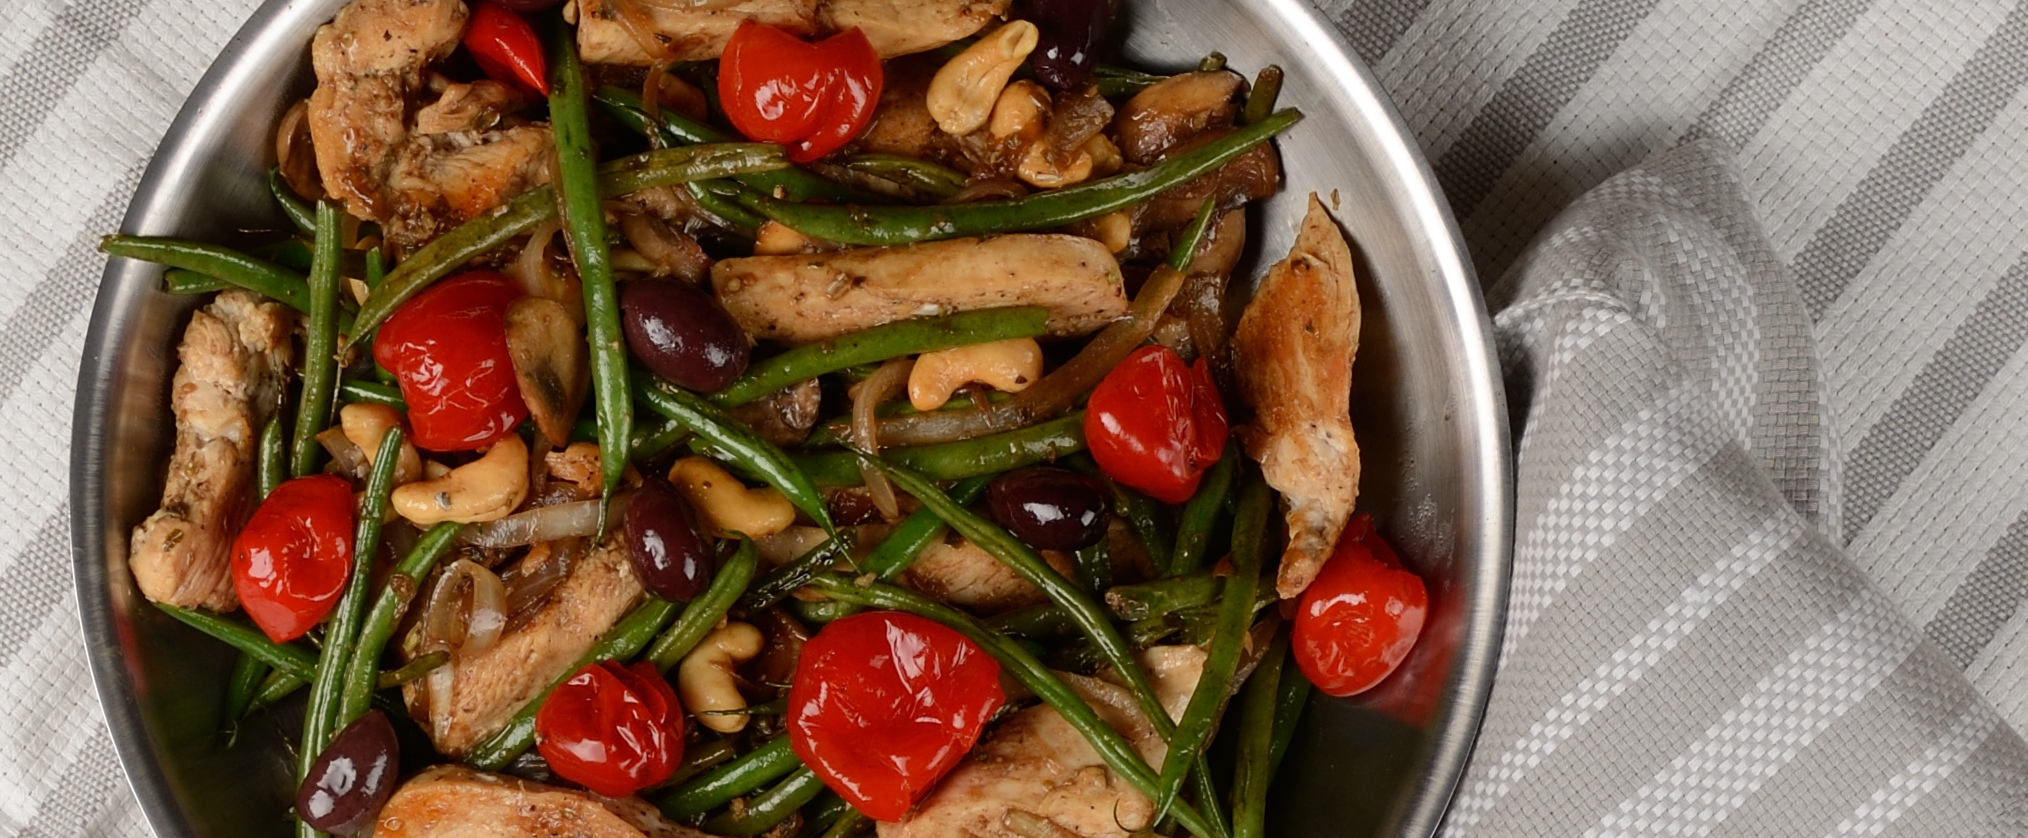 Balsamic Chicken with Veggies and Olives